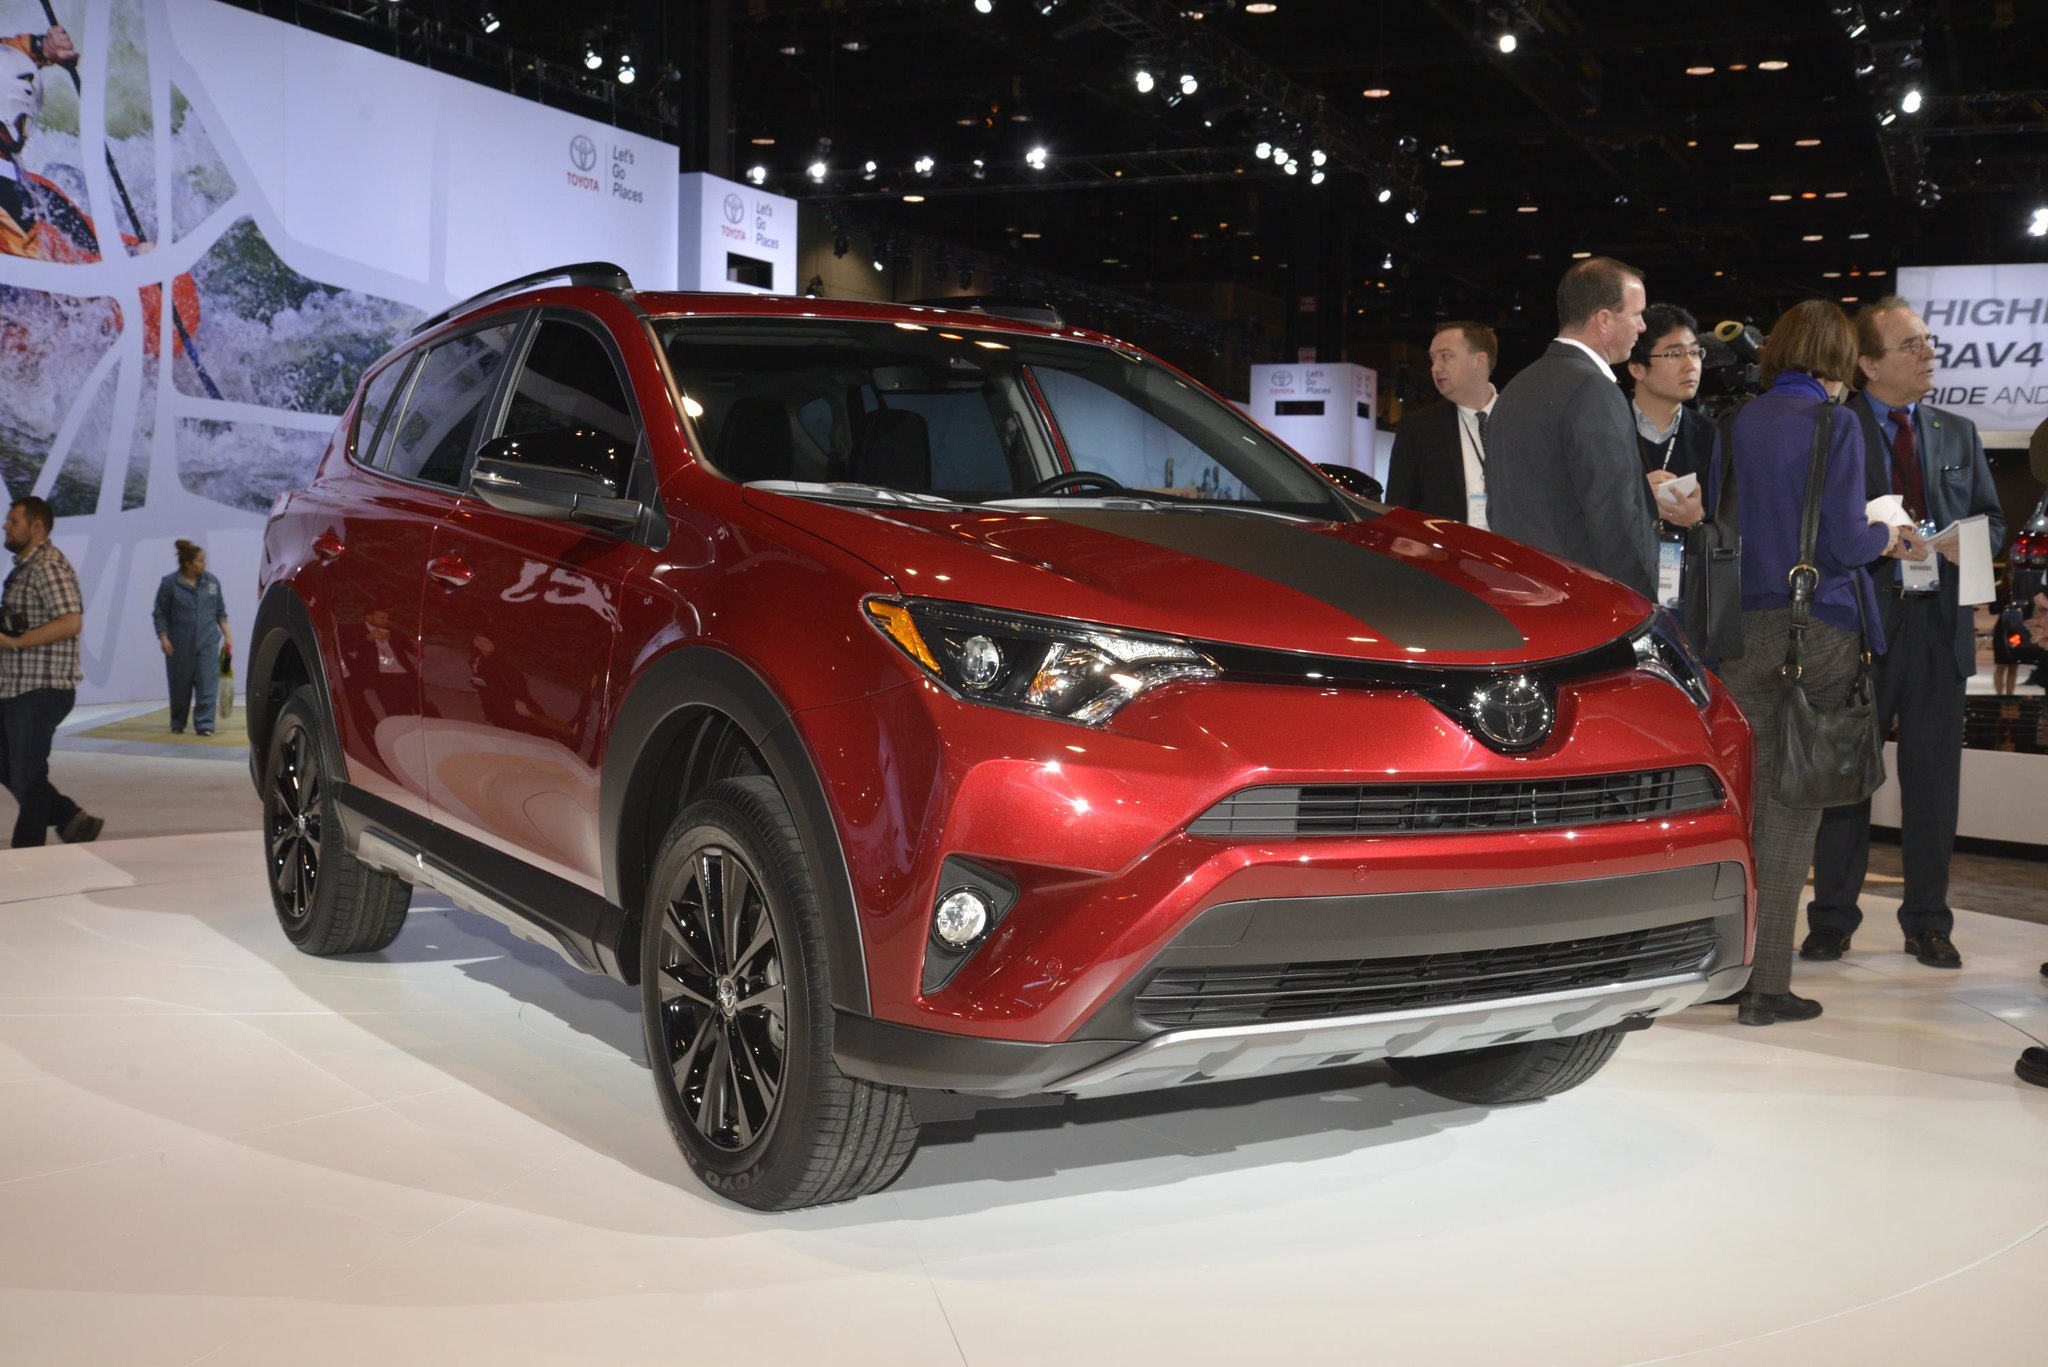 2018 Toyota RAV4 Adventure live photos: 2017 Chicago Auto Show